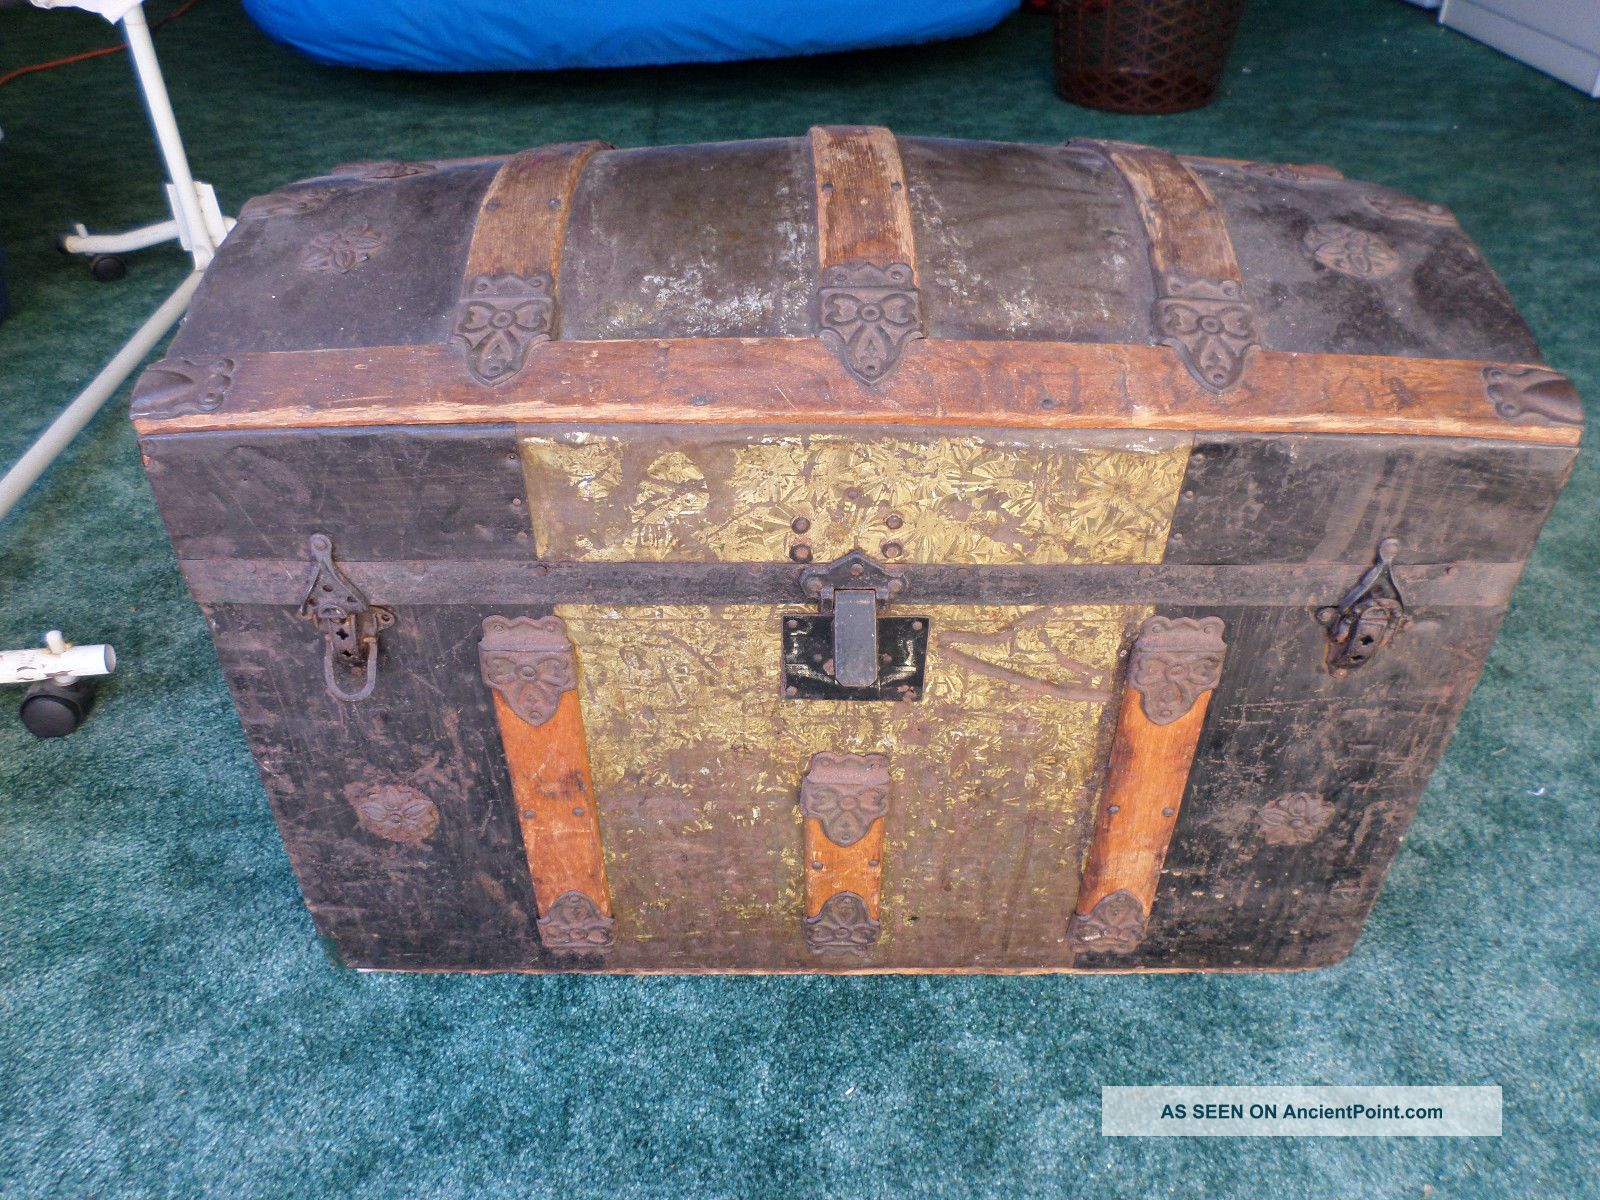 Vintage Antique Dome Top Steamer Trunk Looking For A Friend And Home Please: - } 1800-1899 photo